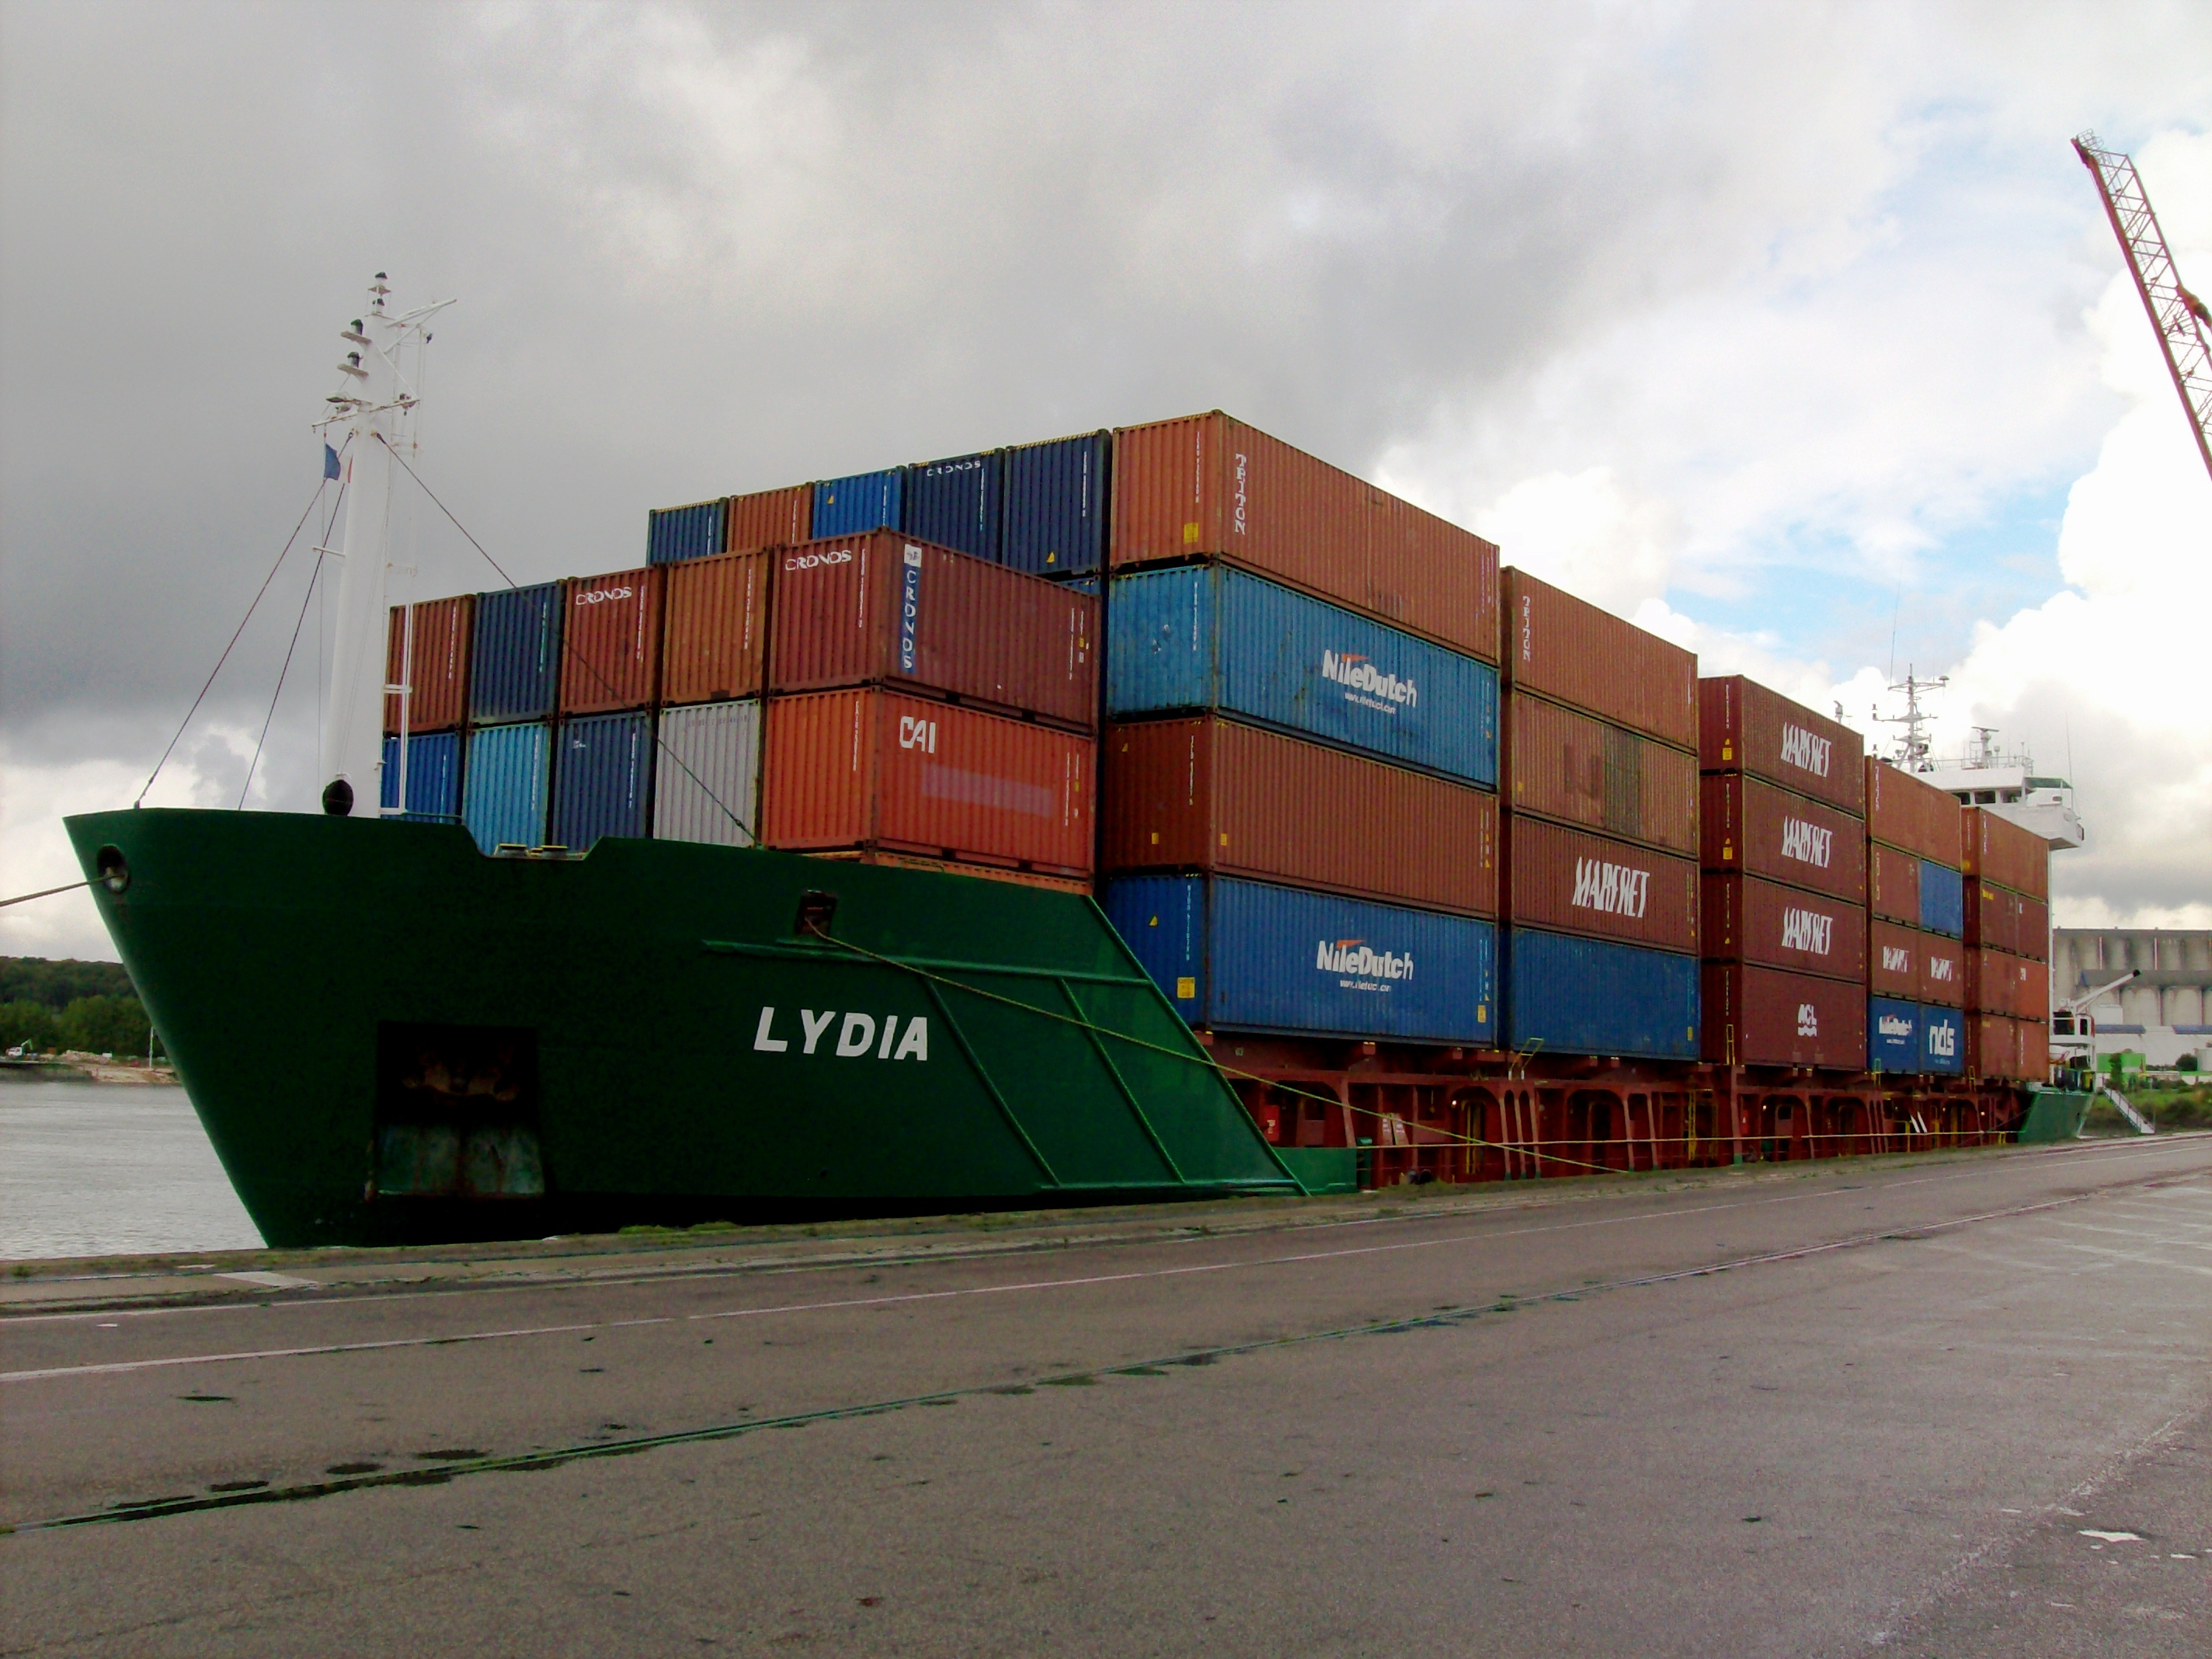 Self-propelled container type Lydia